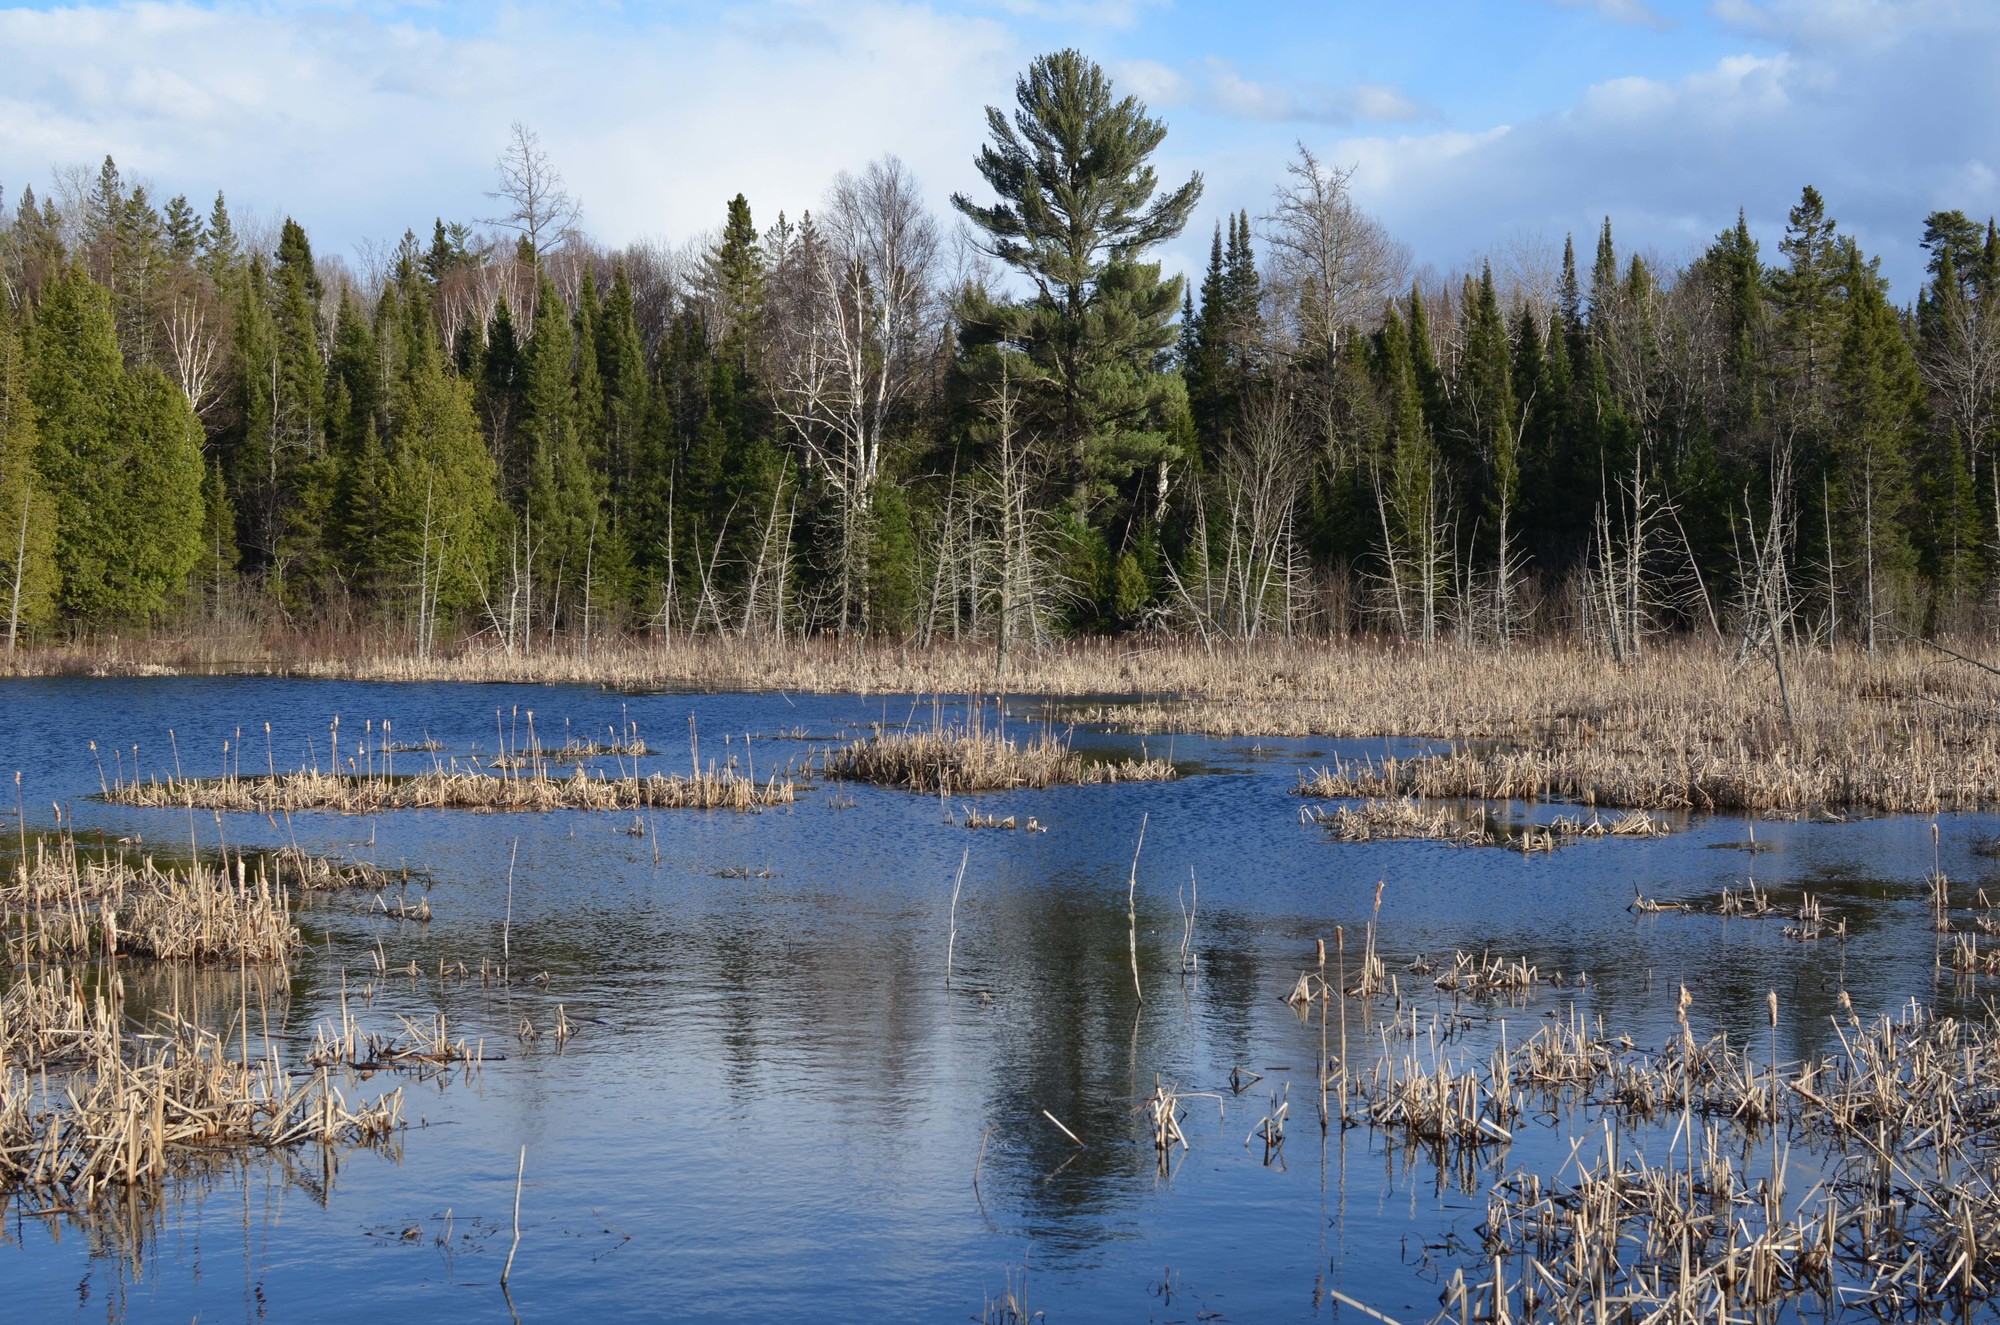 More than half of Michigan's wetlands, like this one, have been lost over the past two centuries.